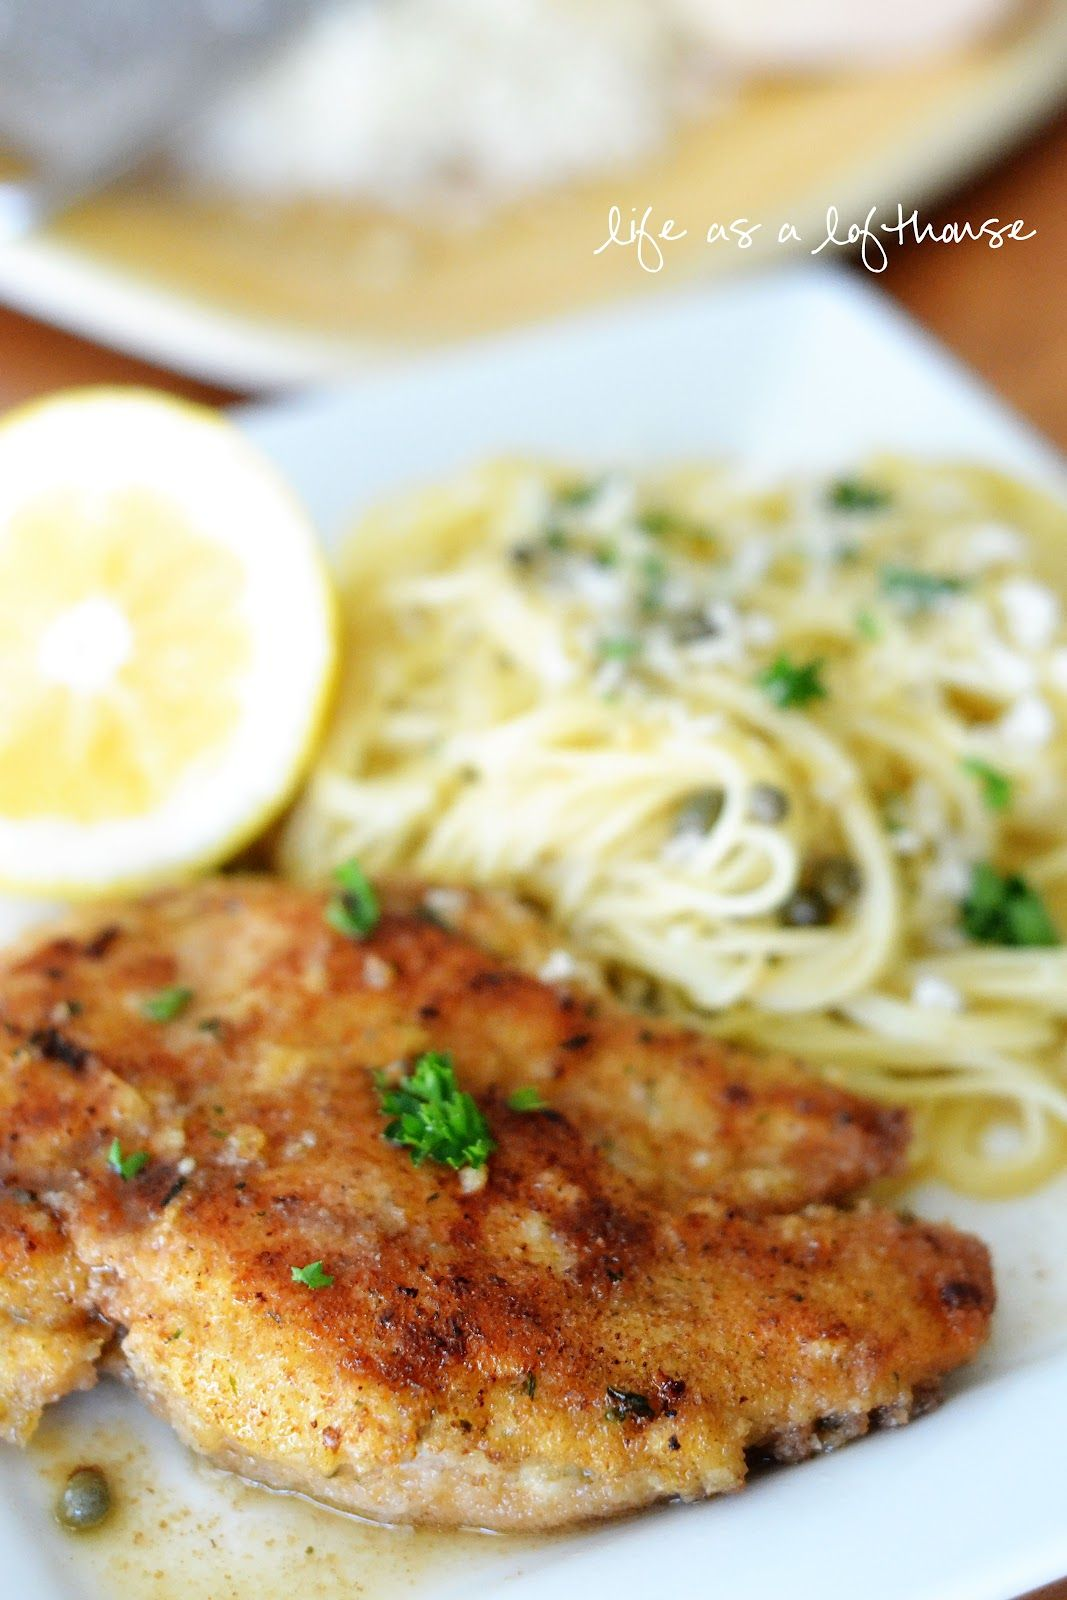 Chicken Piccata - Delicious! Start to finish the entire meal took 30 minutes to make  Really fresh tasting, and light.